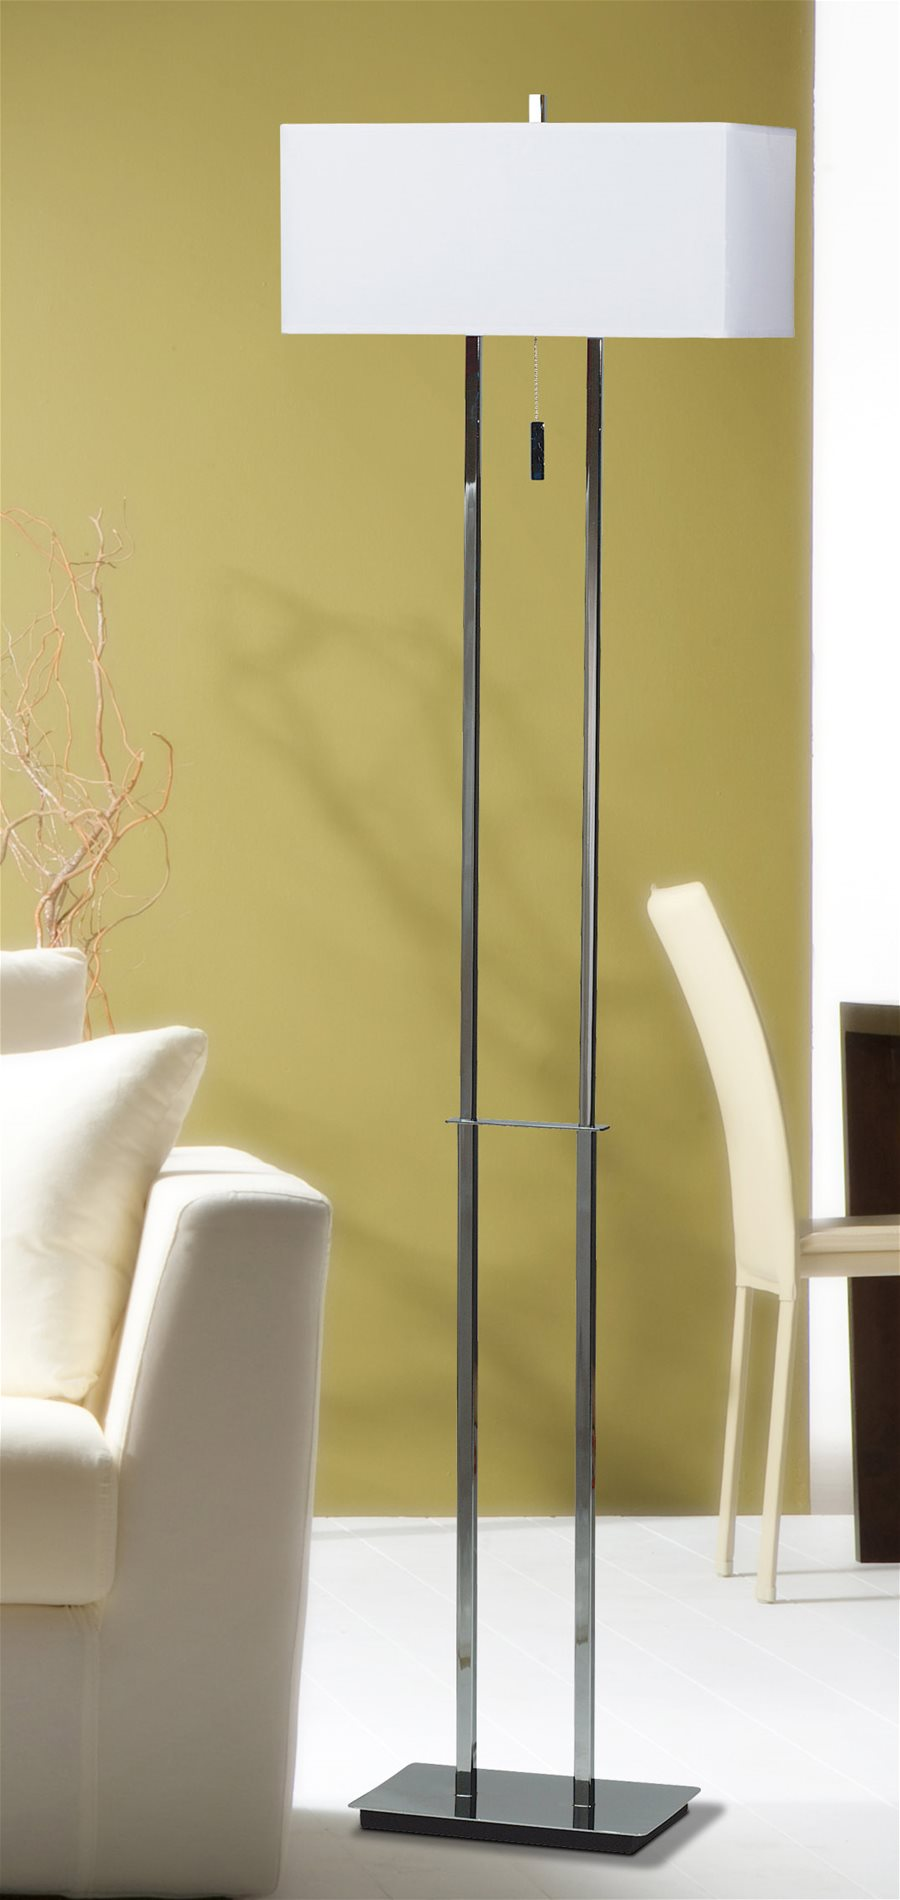 Remarkable Kenroy Emilio Transitional Floor Lamp Kr 30817 Ch See Details Theyellowbook Wood Chair Design Ideas Theyellowbookinfo